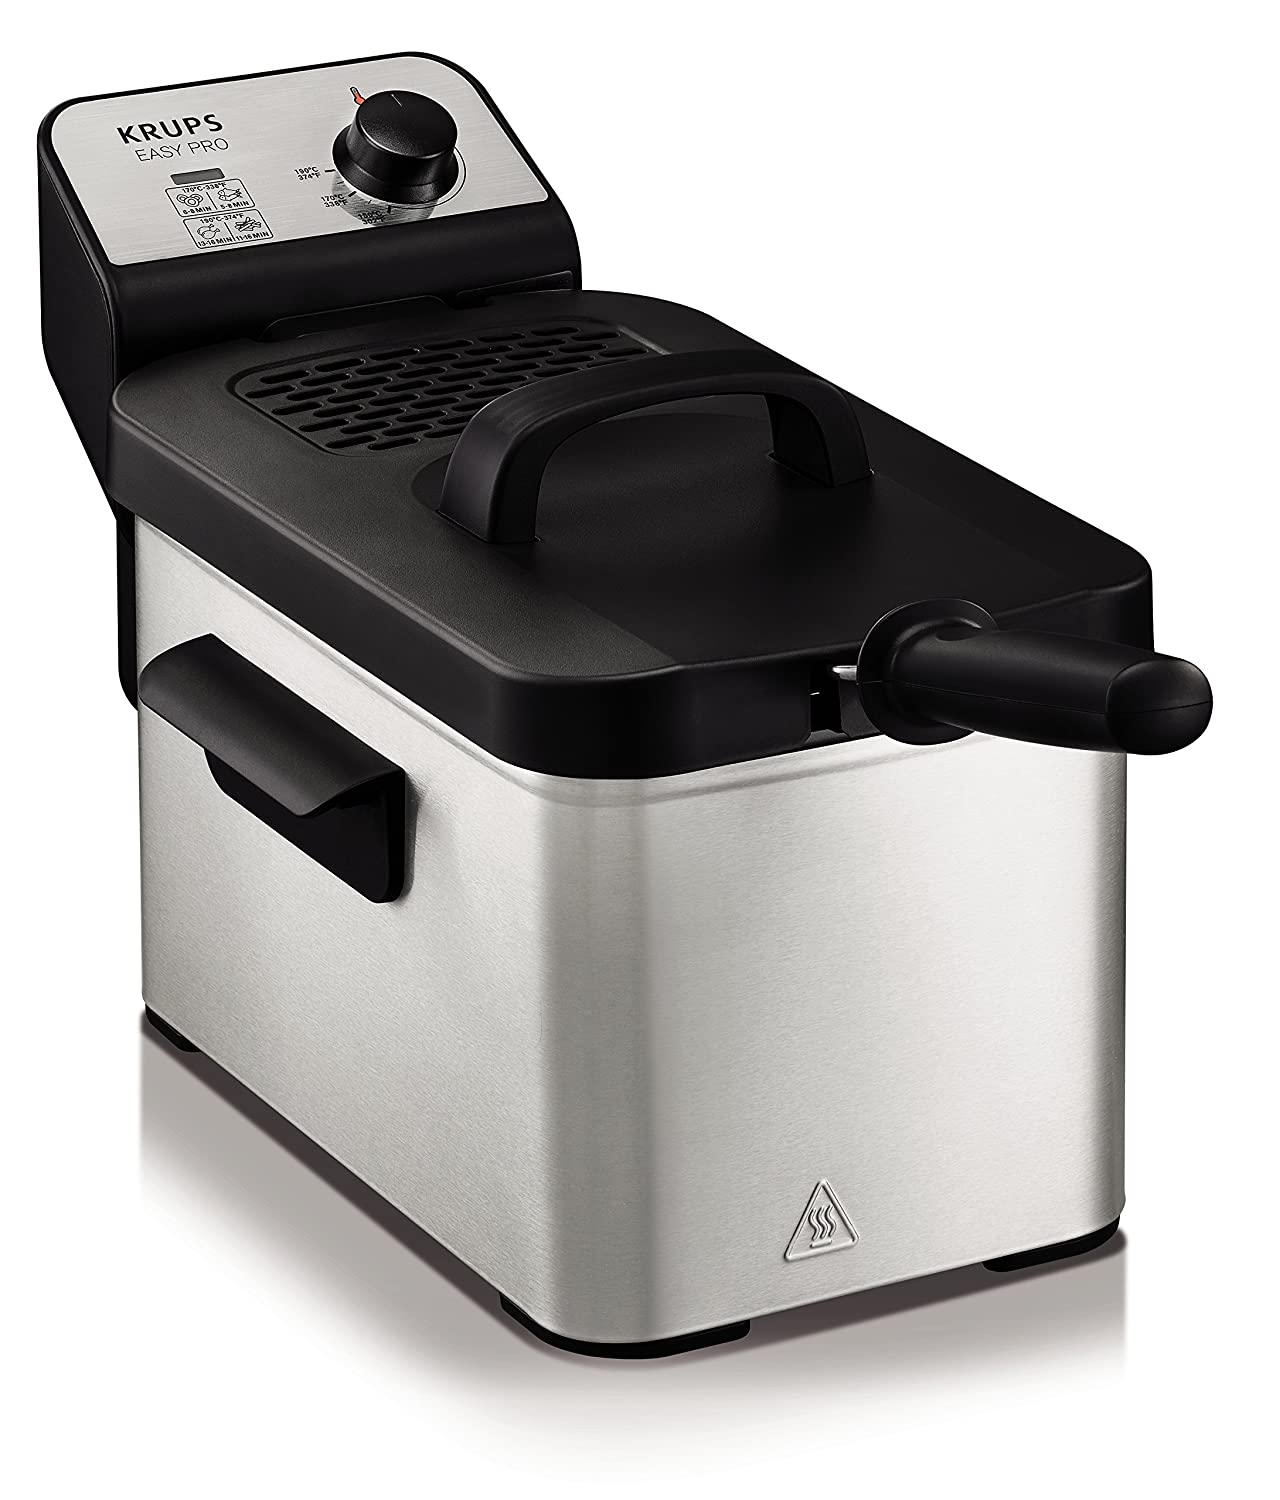 Krups KJ33 Easy Pro 2.5 L Deep-Fryer with Snack Accessory with Food Presets and Timer, Stainless Steel KJ332051